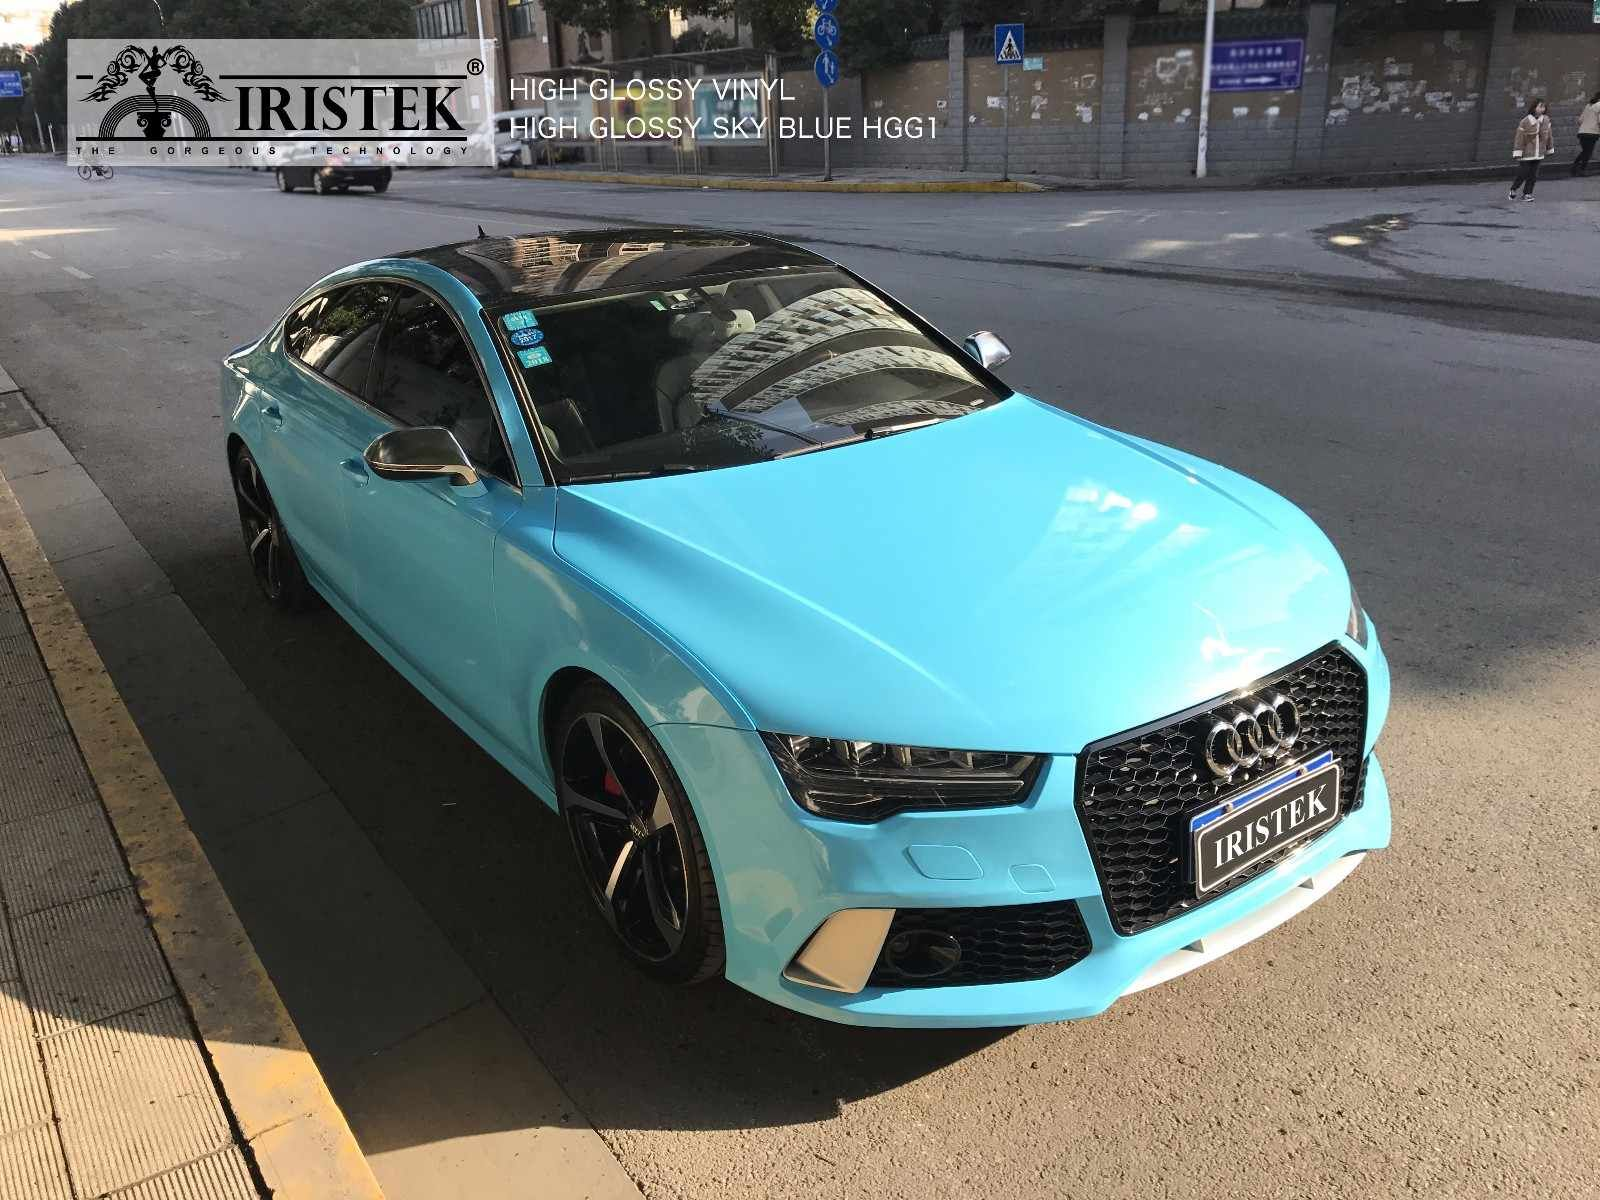 High Glossy Vinyl Model Hgg1 Color High Glossy Sky Blue We Have Serves Team To Train Customers About Product Kn Car Colors Luxury Car Interior Vinyl Wrap Car